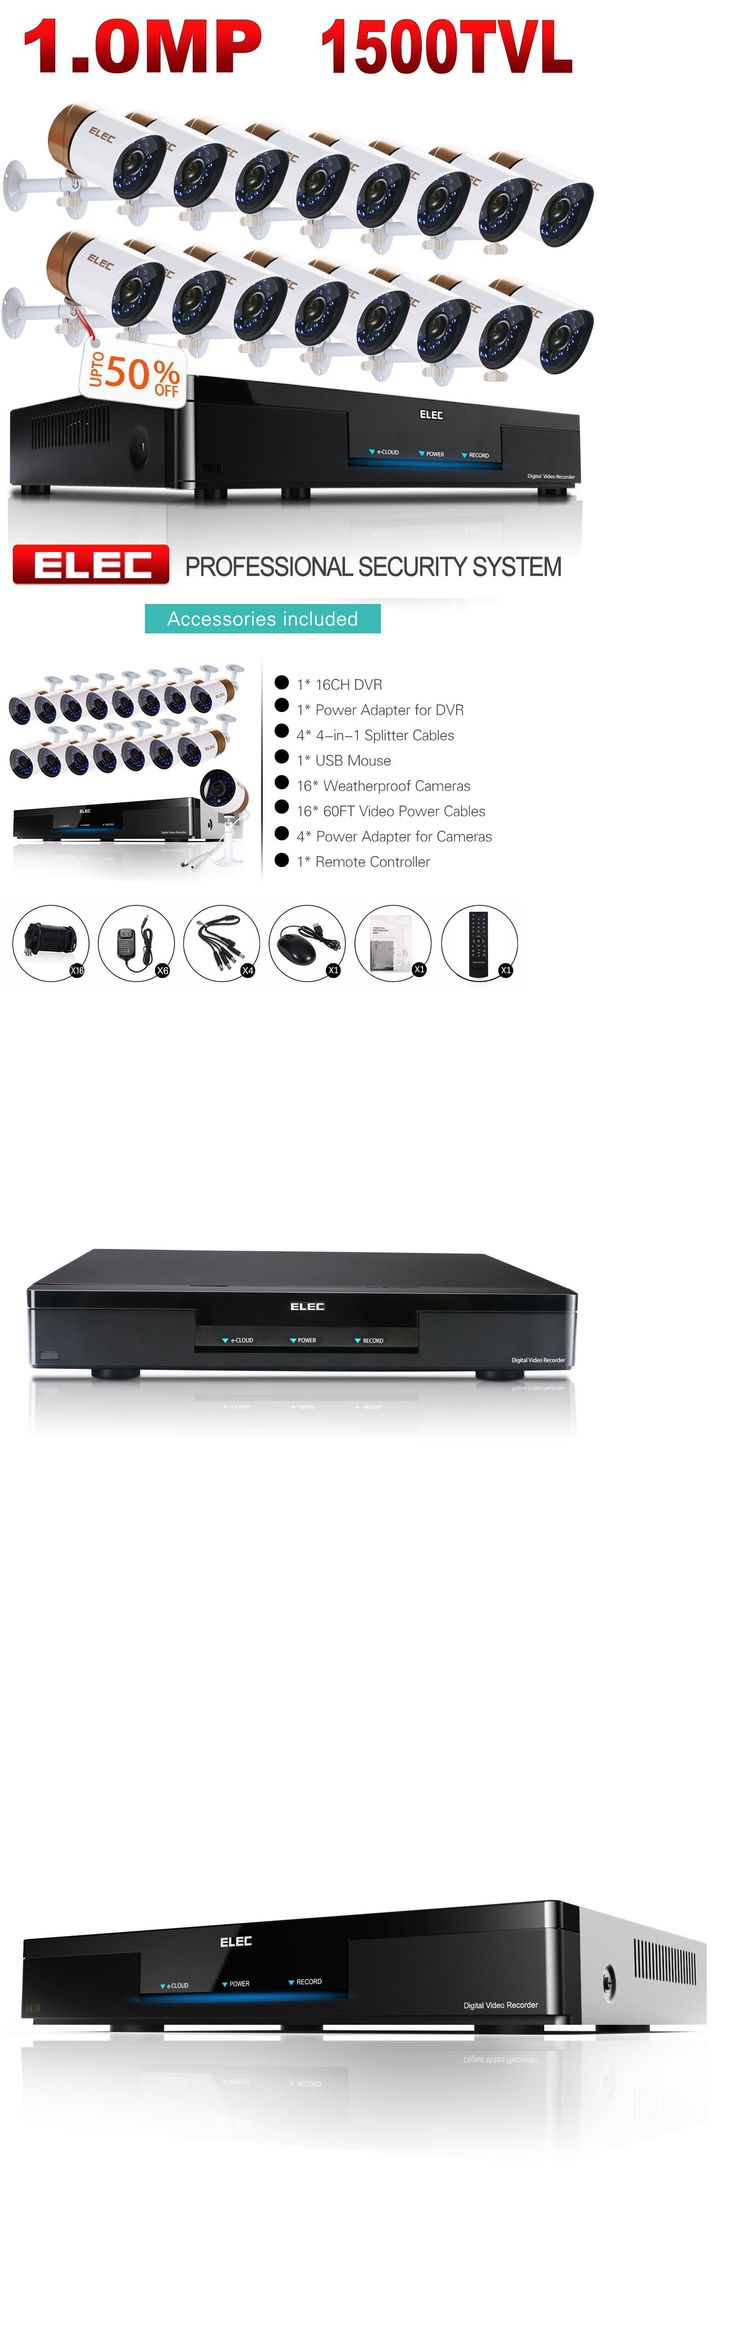 Surveillance Security Systems: Elec 16Ch 960H Hdmi Dvr Cctv 1500Tvl Home Security Camera System Video Recorder -> BUY IT NOW ONLY: $610.2 on eBay!